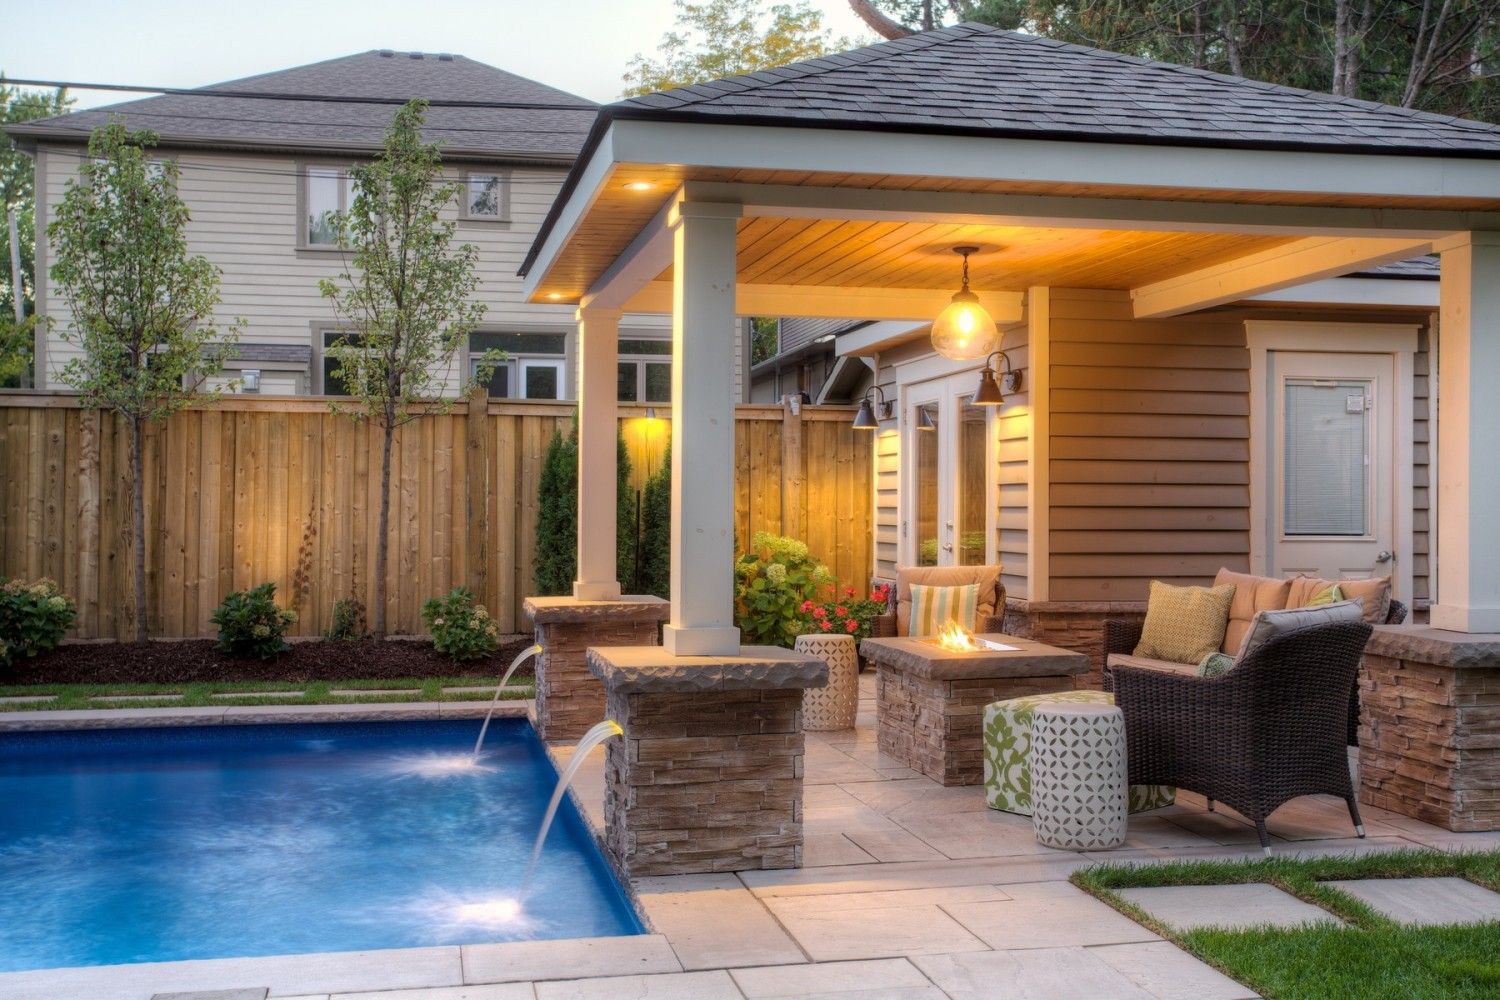 Pool cabanas sheds genesis woodworks burlington and for Pool houses and cabanas